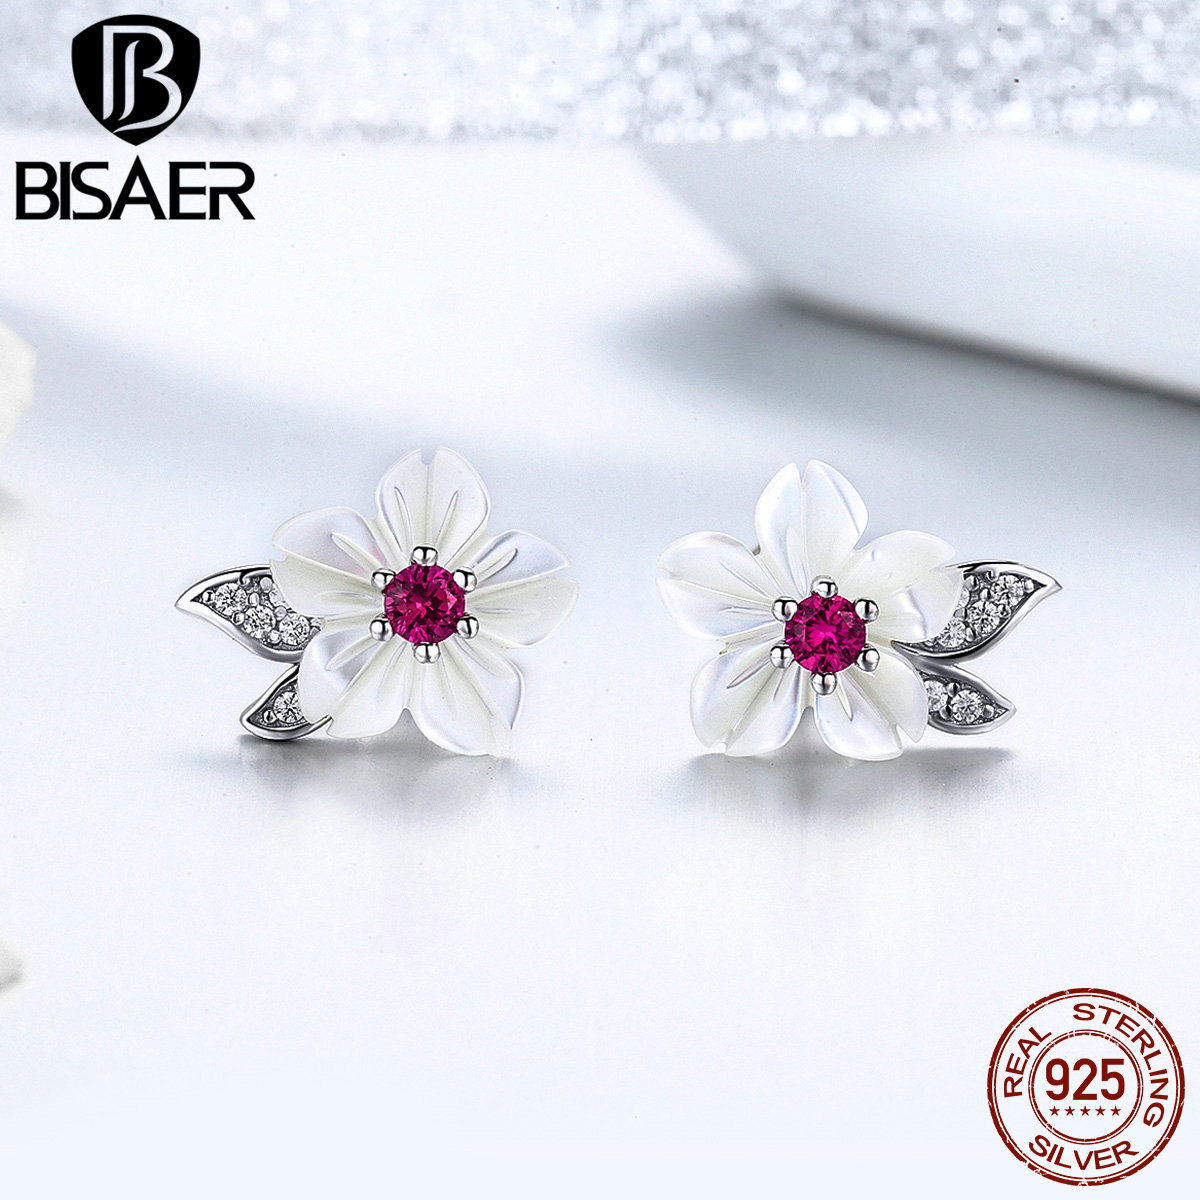 BISAER 925 Sterling Silver Blooming Shell Flower Stud Earrings Orchid Flower Small Women Earrings Sterling Silver Jewelry EFE055